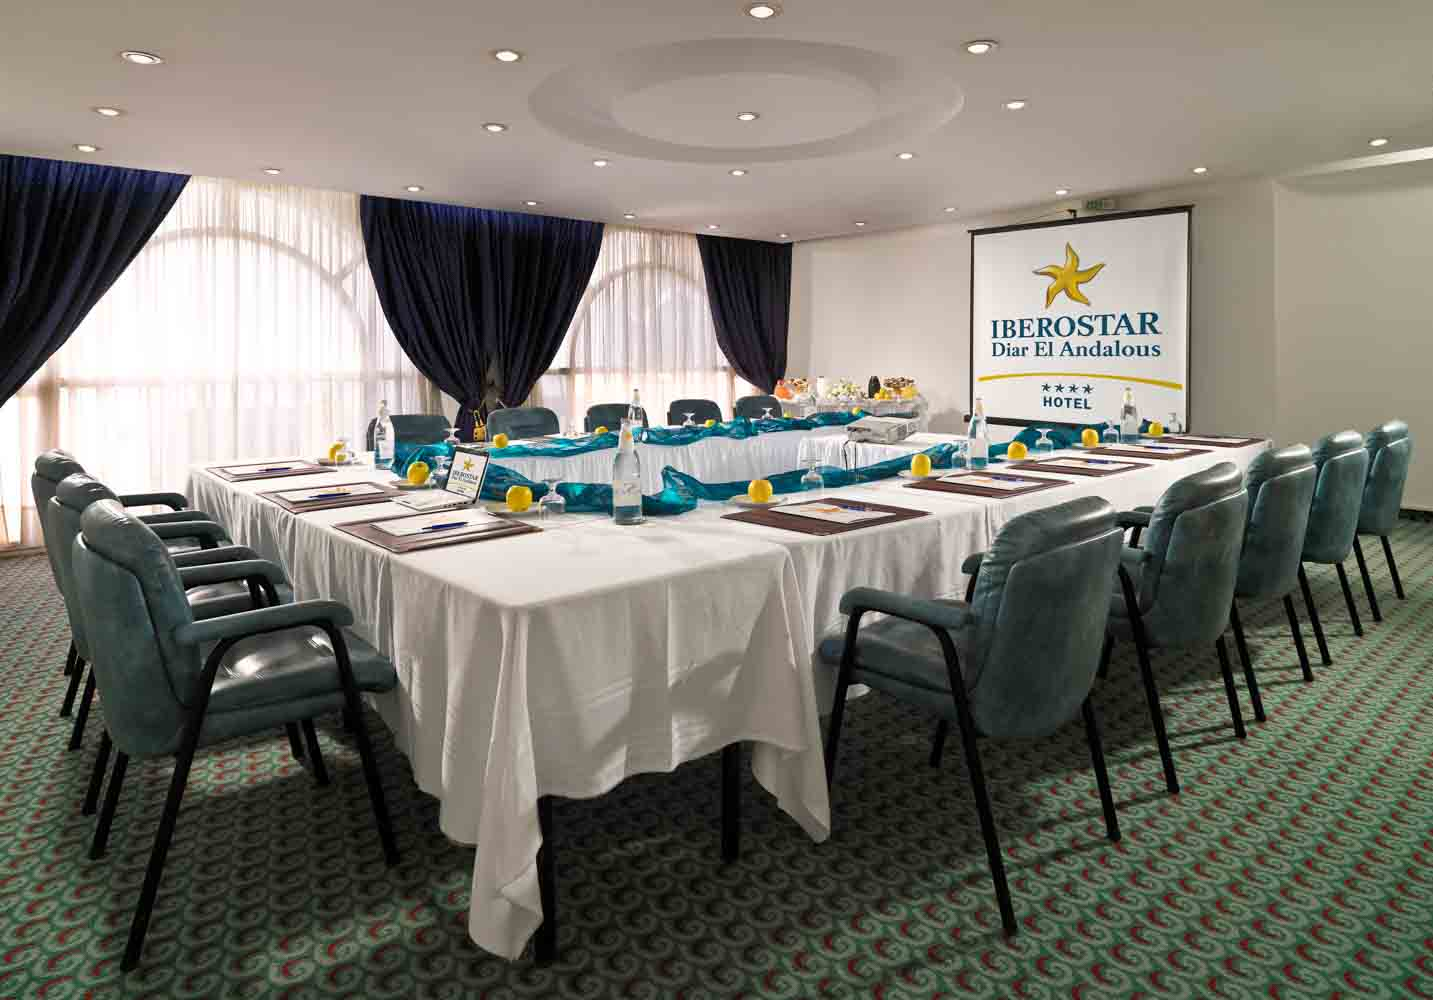 Iberostar Diar El Andalous meeting Room